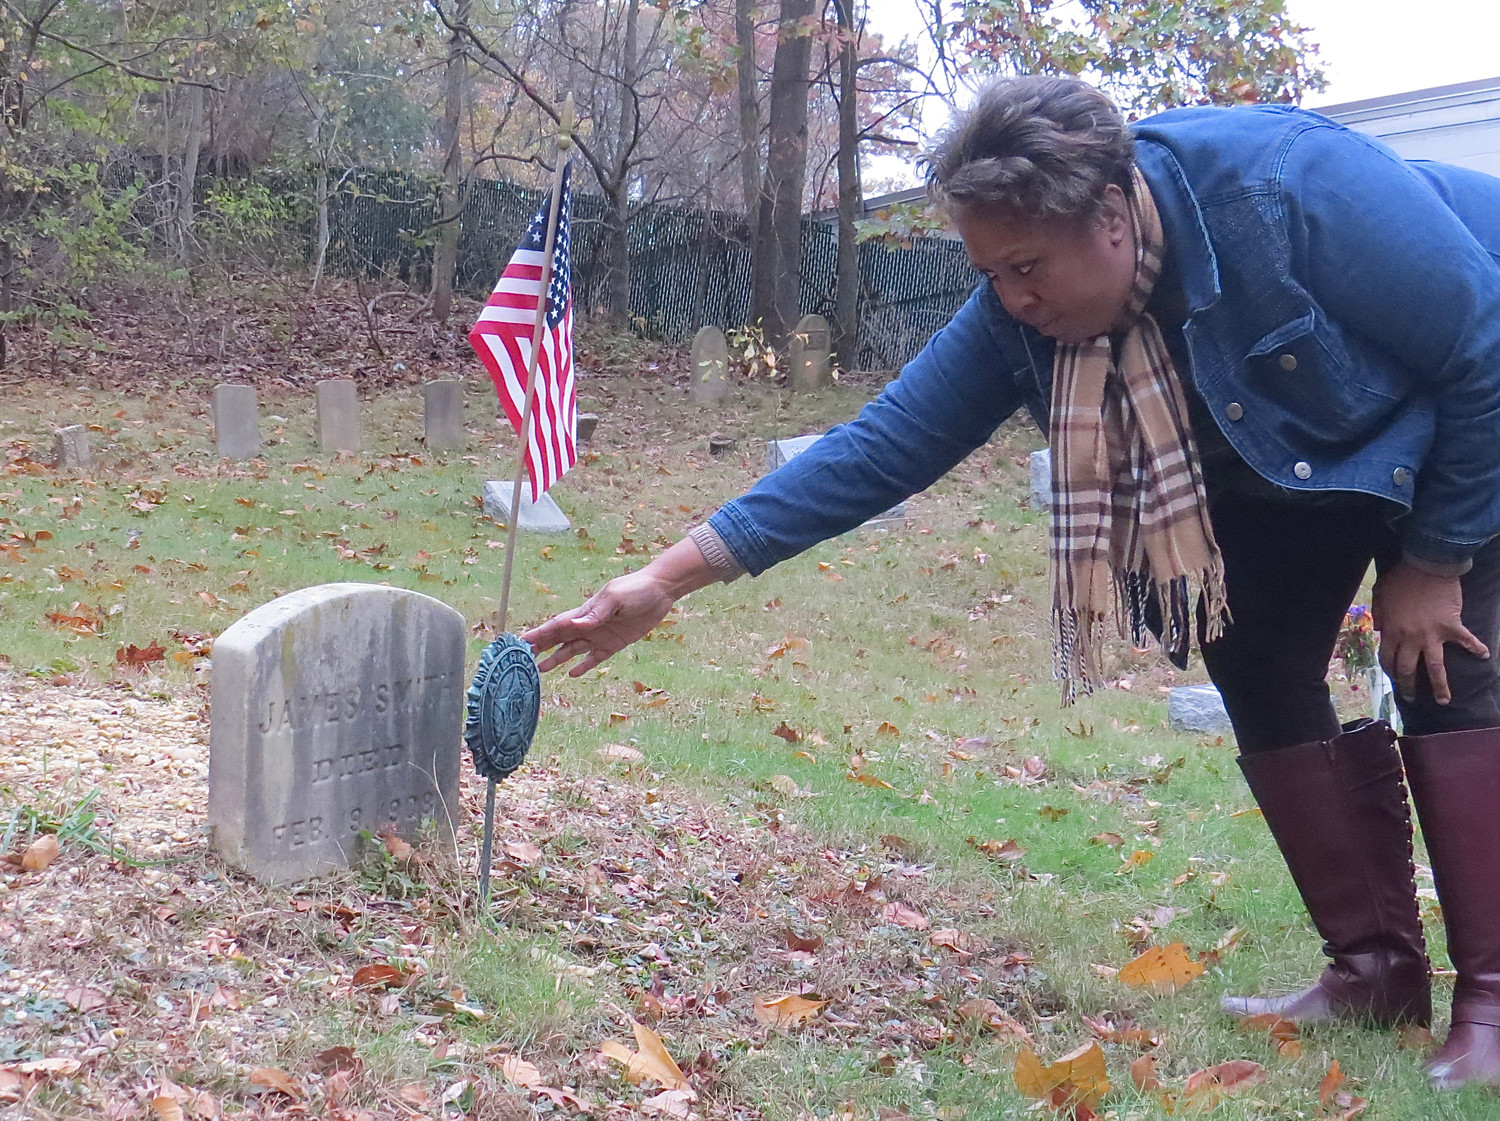 Denise Evans-Sheppard moved a General Army of the Republic marker, given as an honor of military service, at one of the graves of a veteran.